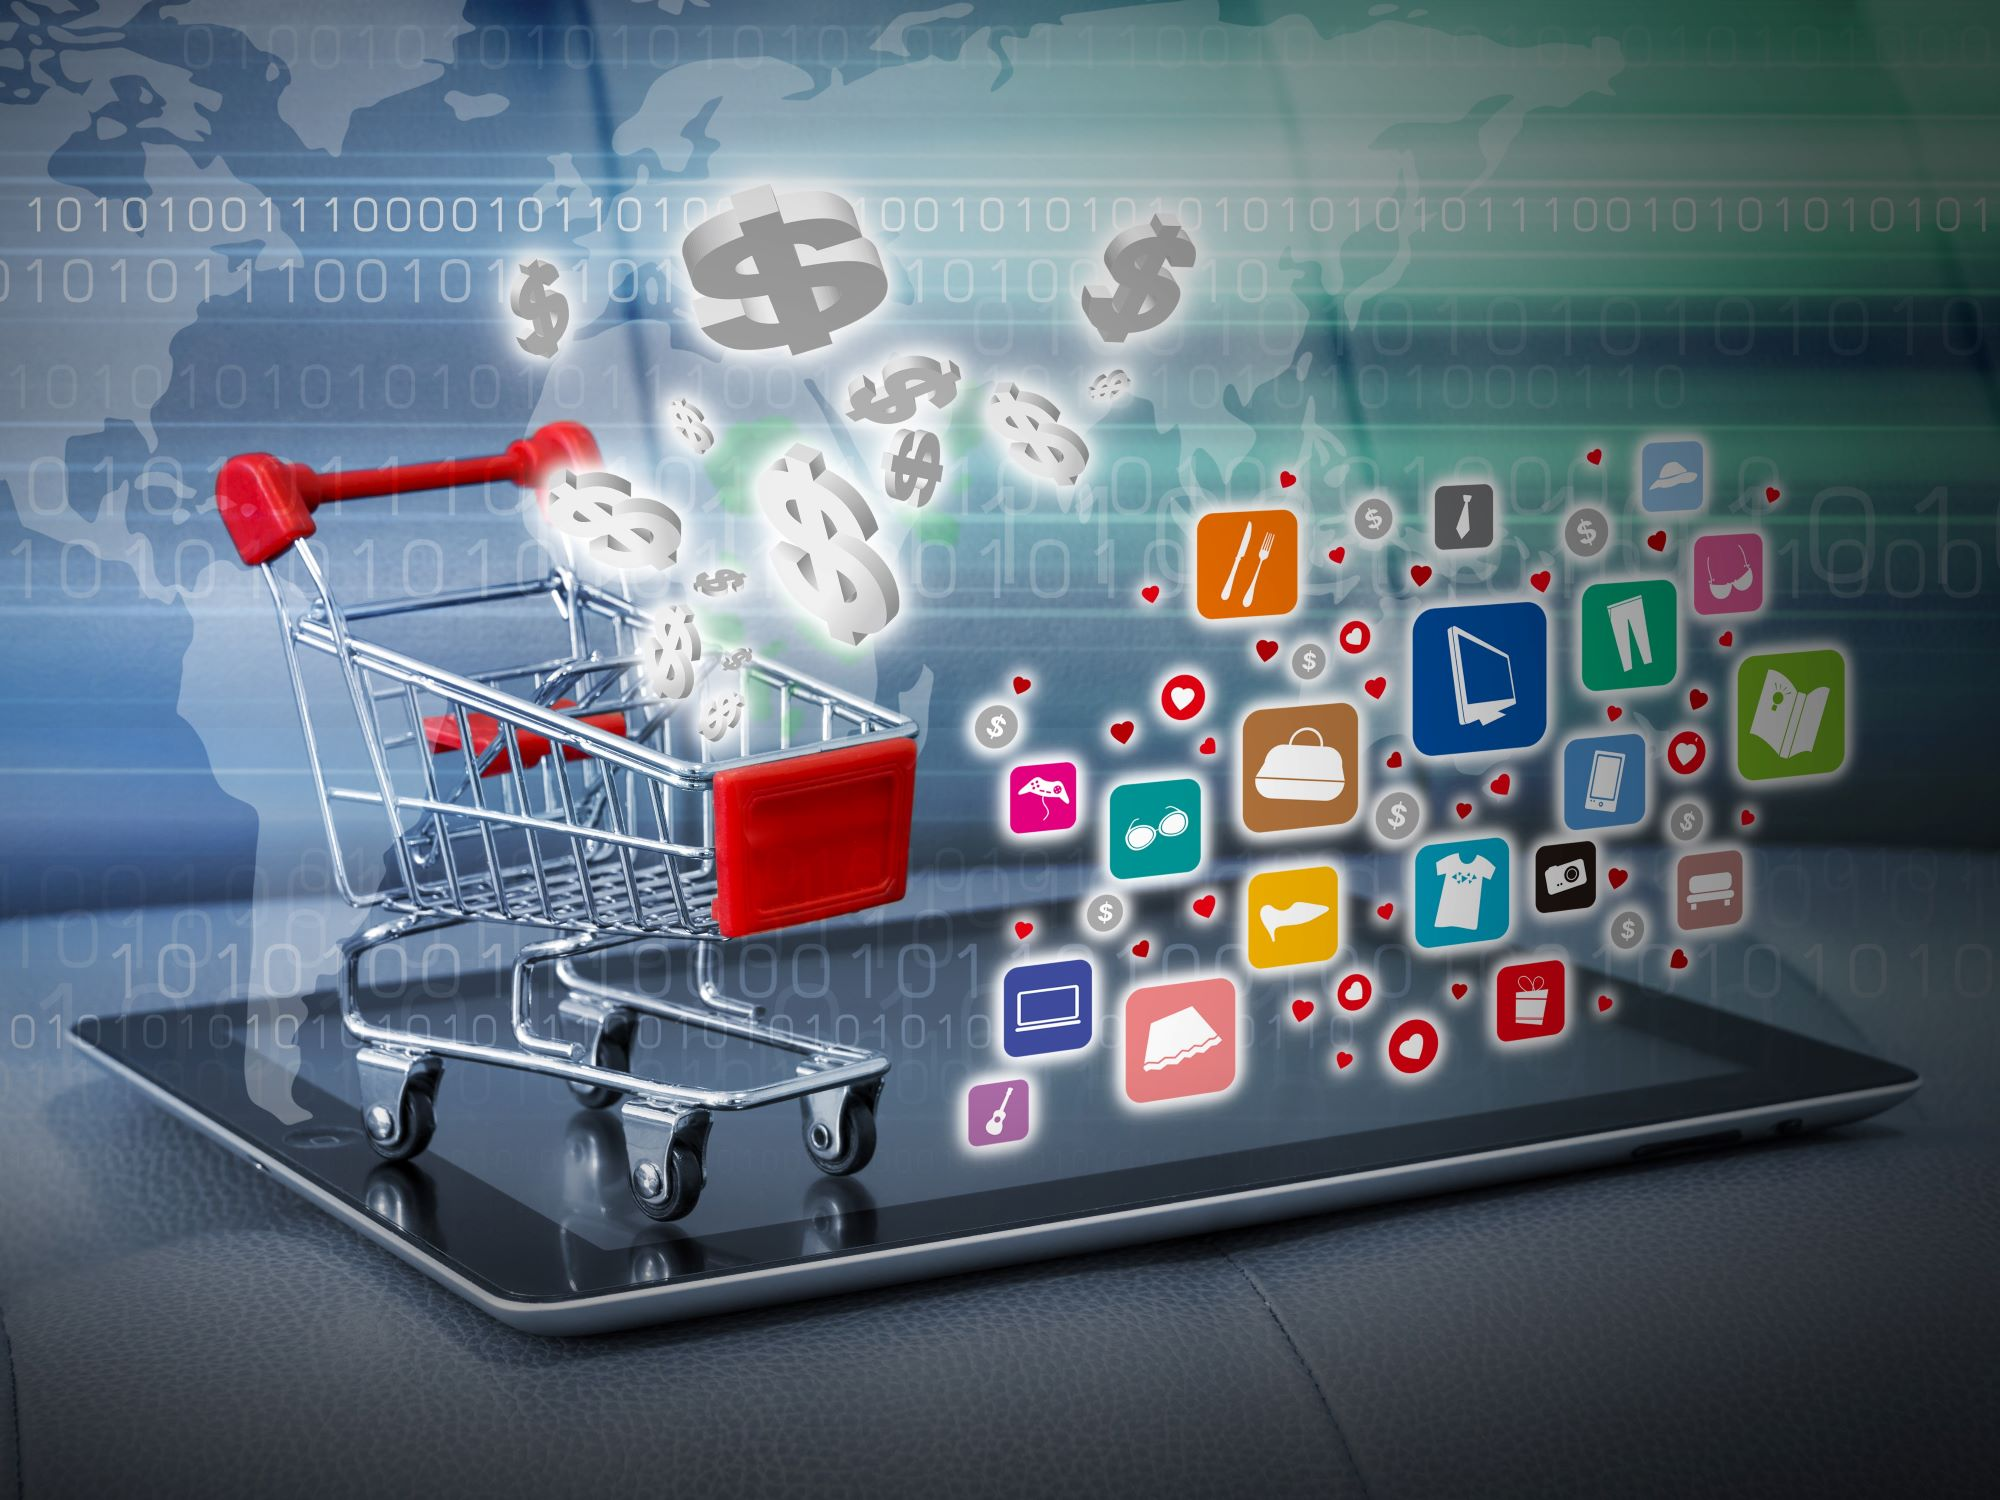 Consumer Technology: Trends and Startups 2019